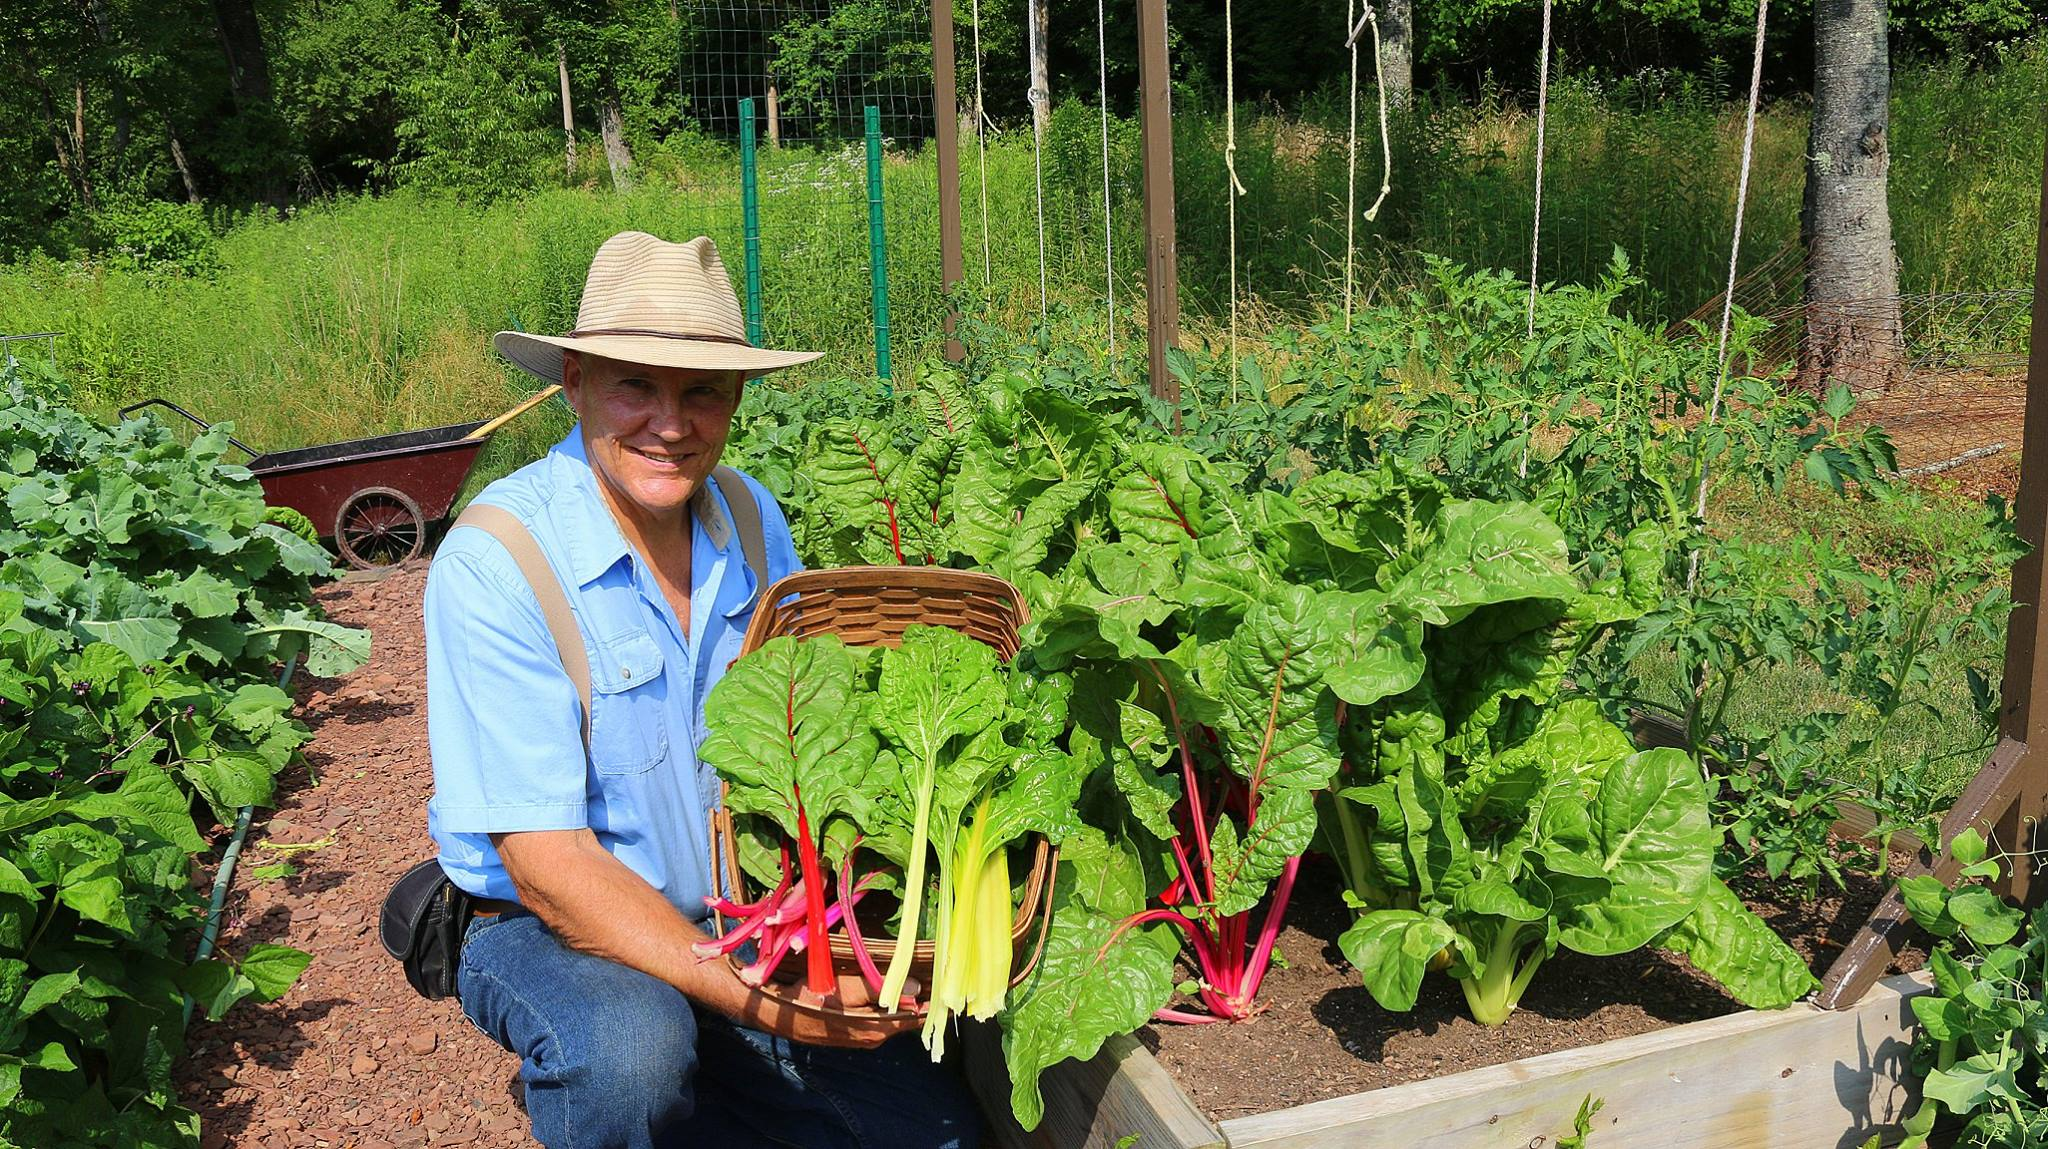 Farmer Fred reaping some of the harvest from his backyard garden!